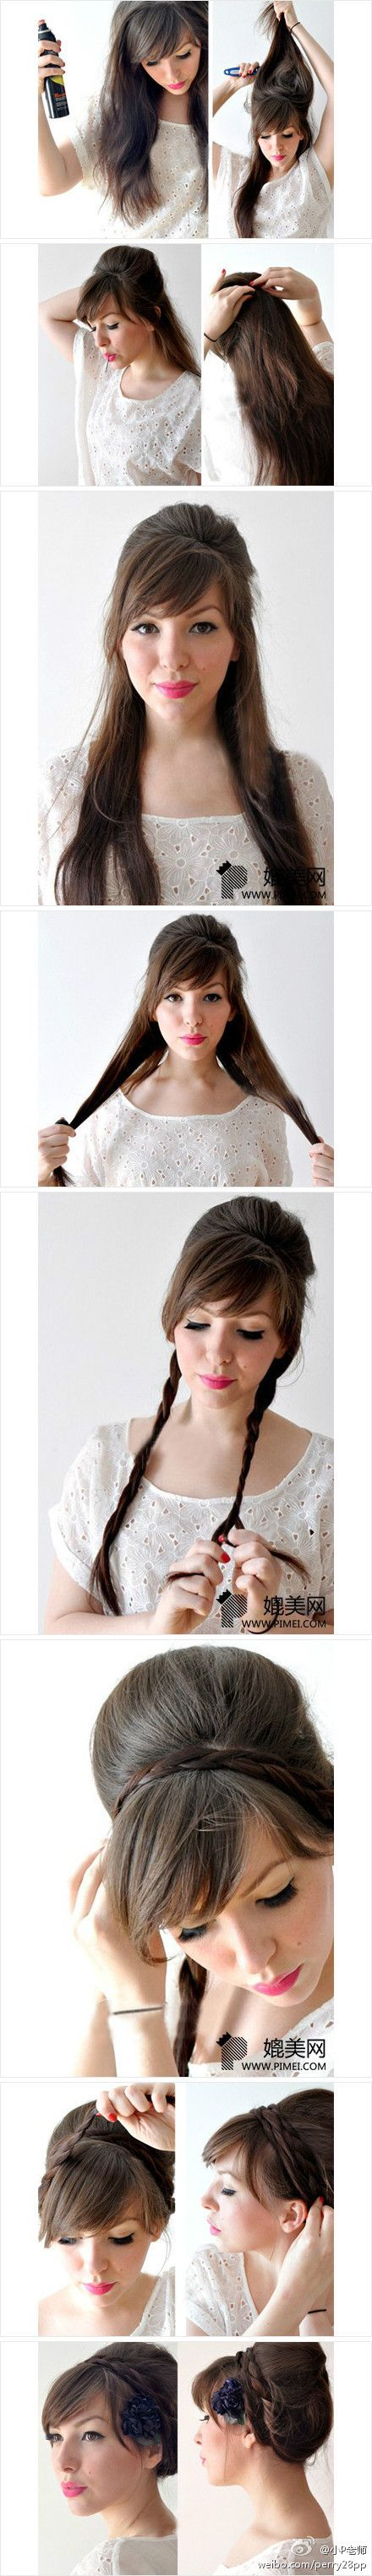 For when my hair ever gets long, long, long.